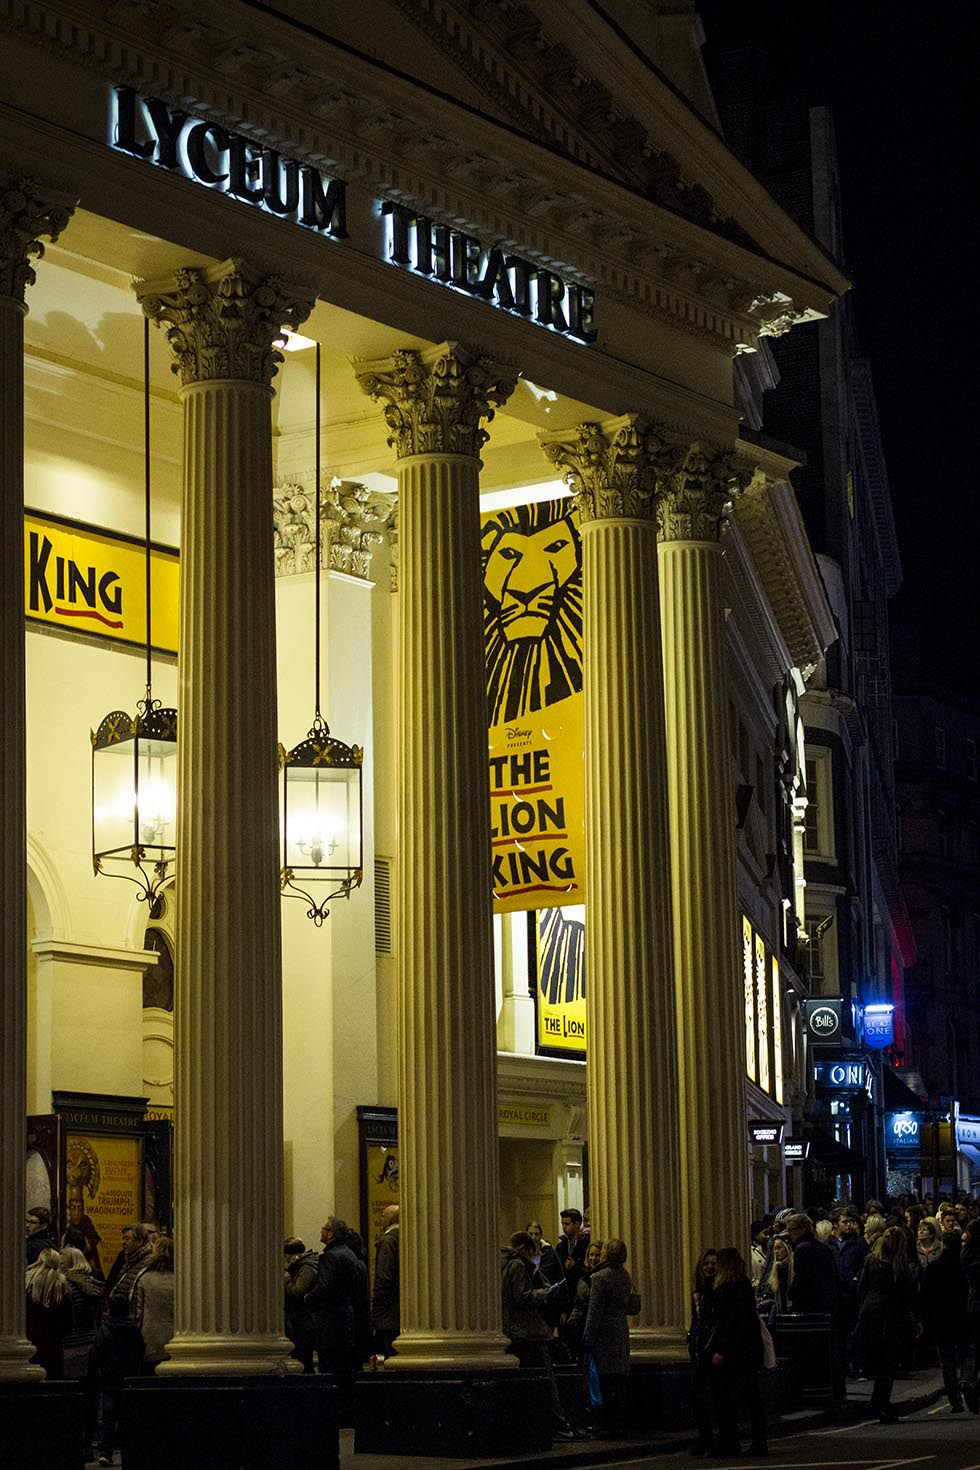 lyceum theatre the lion king london IMG_0464